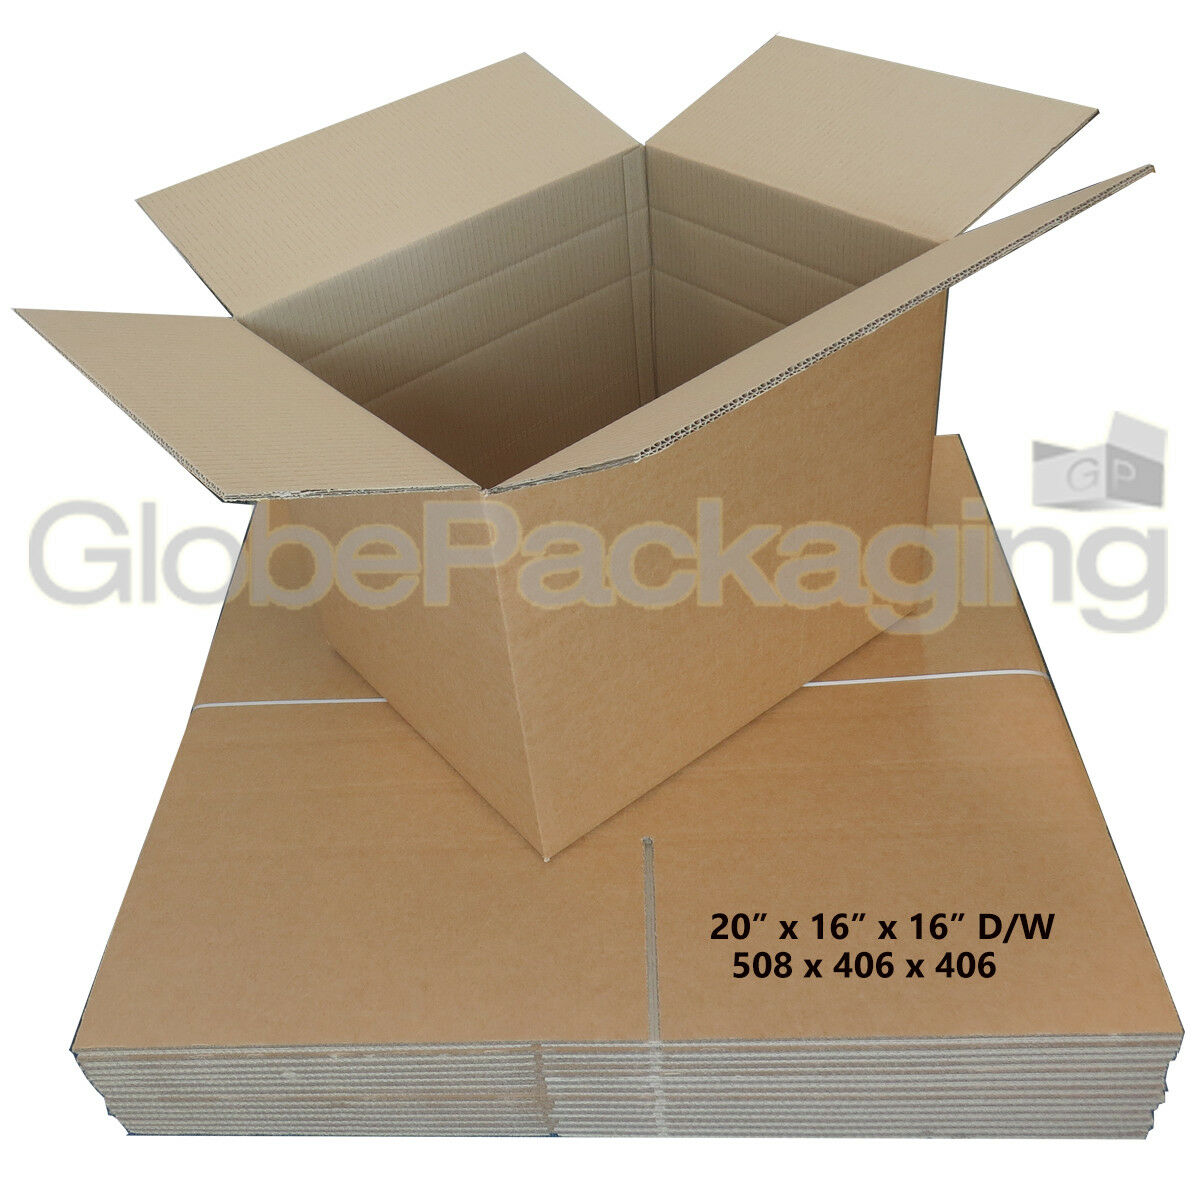 90 x LARGE DOUBLE WALL MOVING SHIPPING BOXES 20x16x16